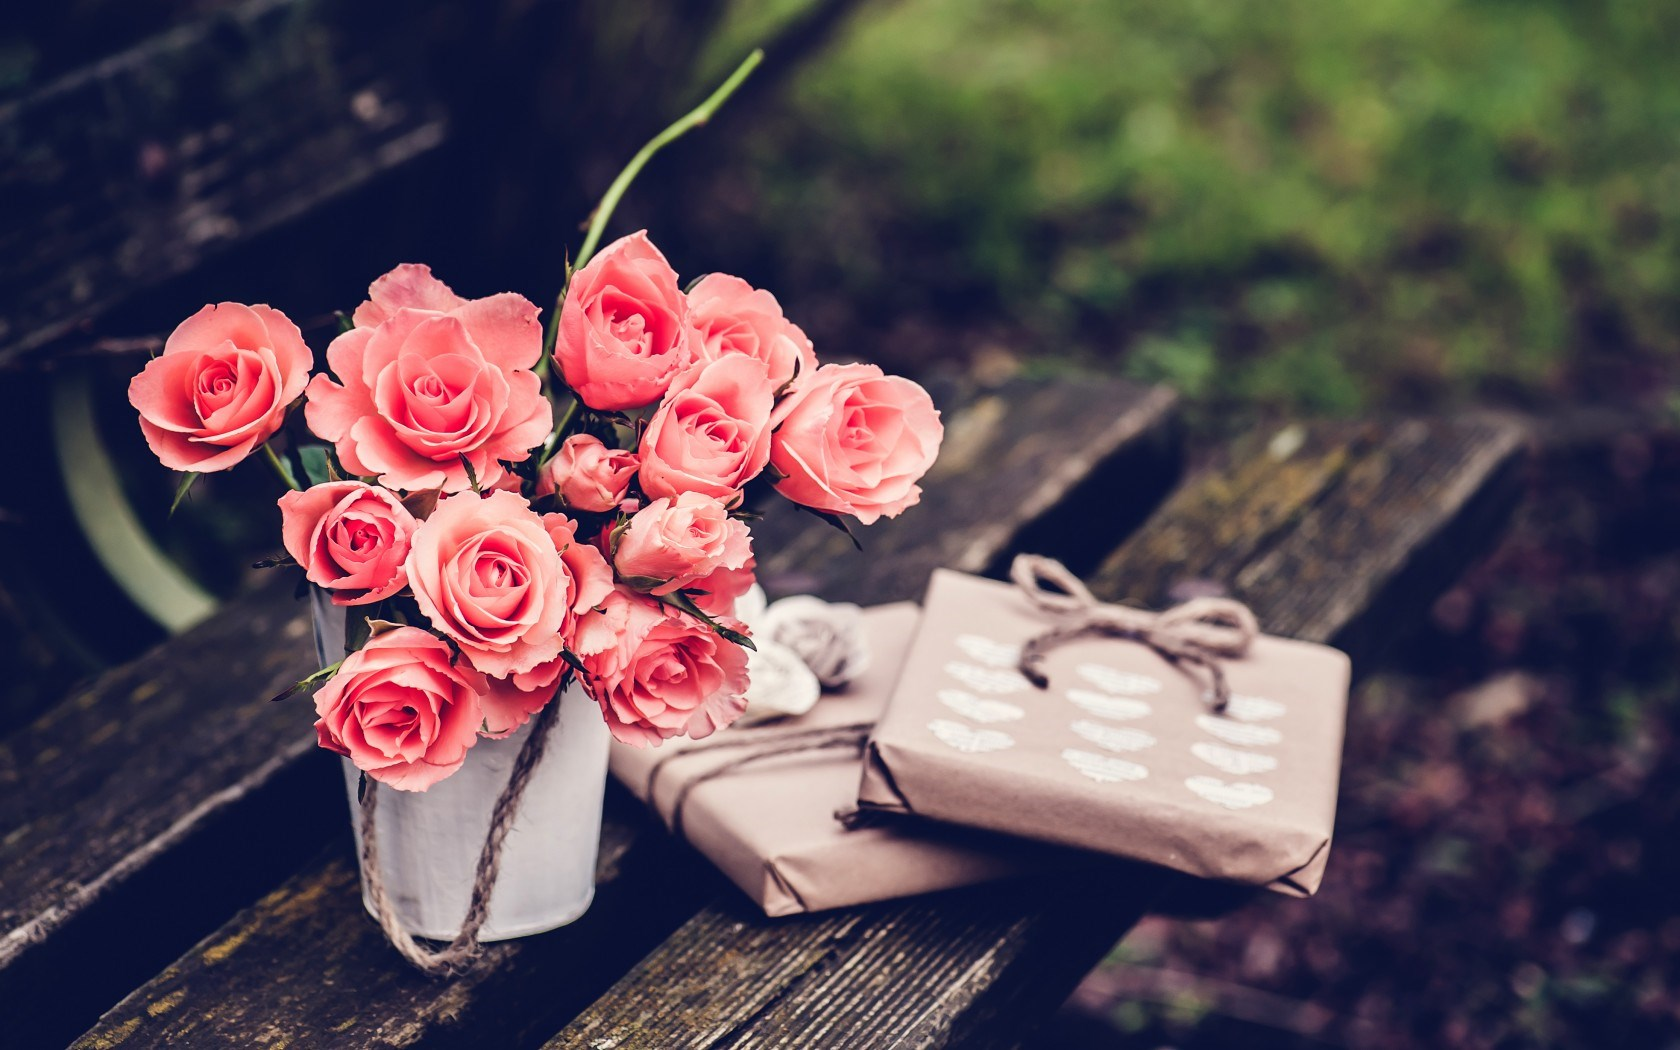 Spink Roses Gifts Hearts Bench Vintage Photo Hd Wallpaper 1680x1050